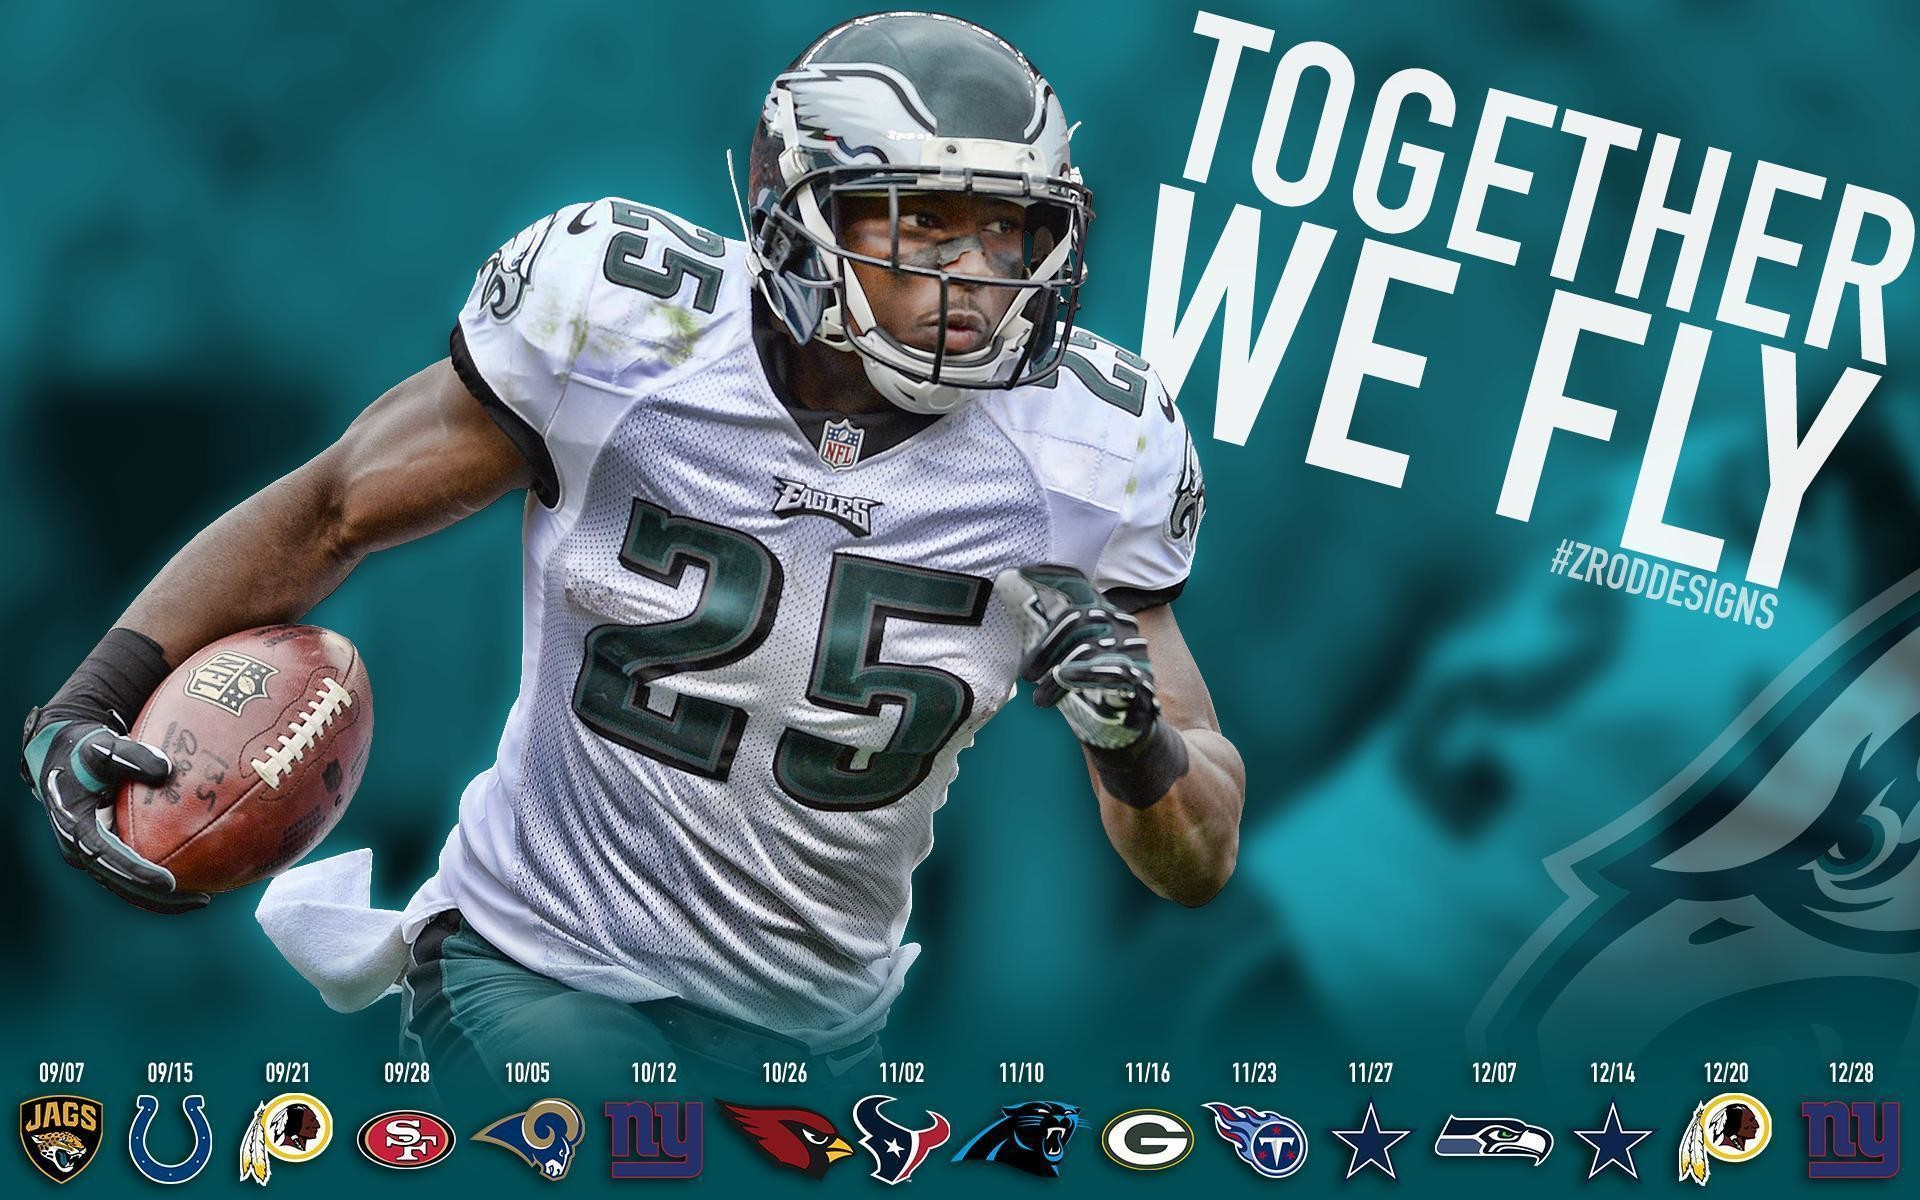 1920x1200 Philadelphia Eagles 2016 Schedule Wallpaper - WallpaperSafari